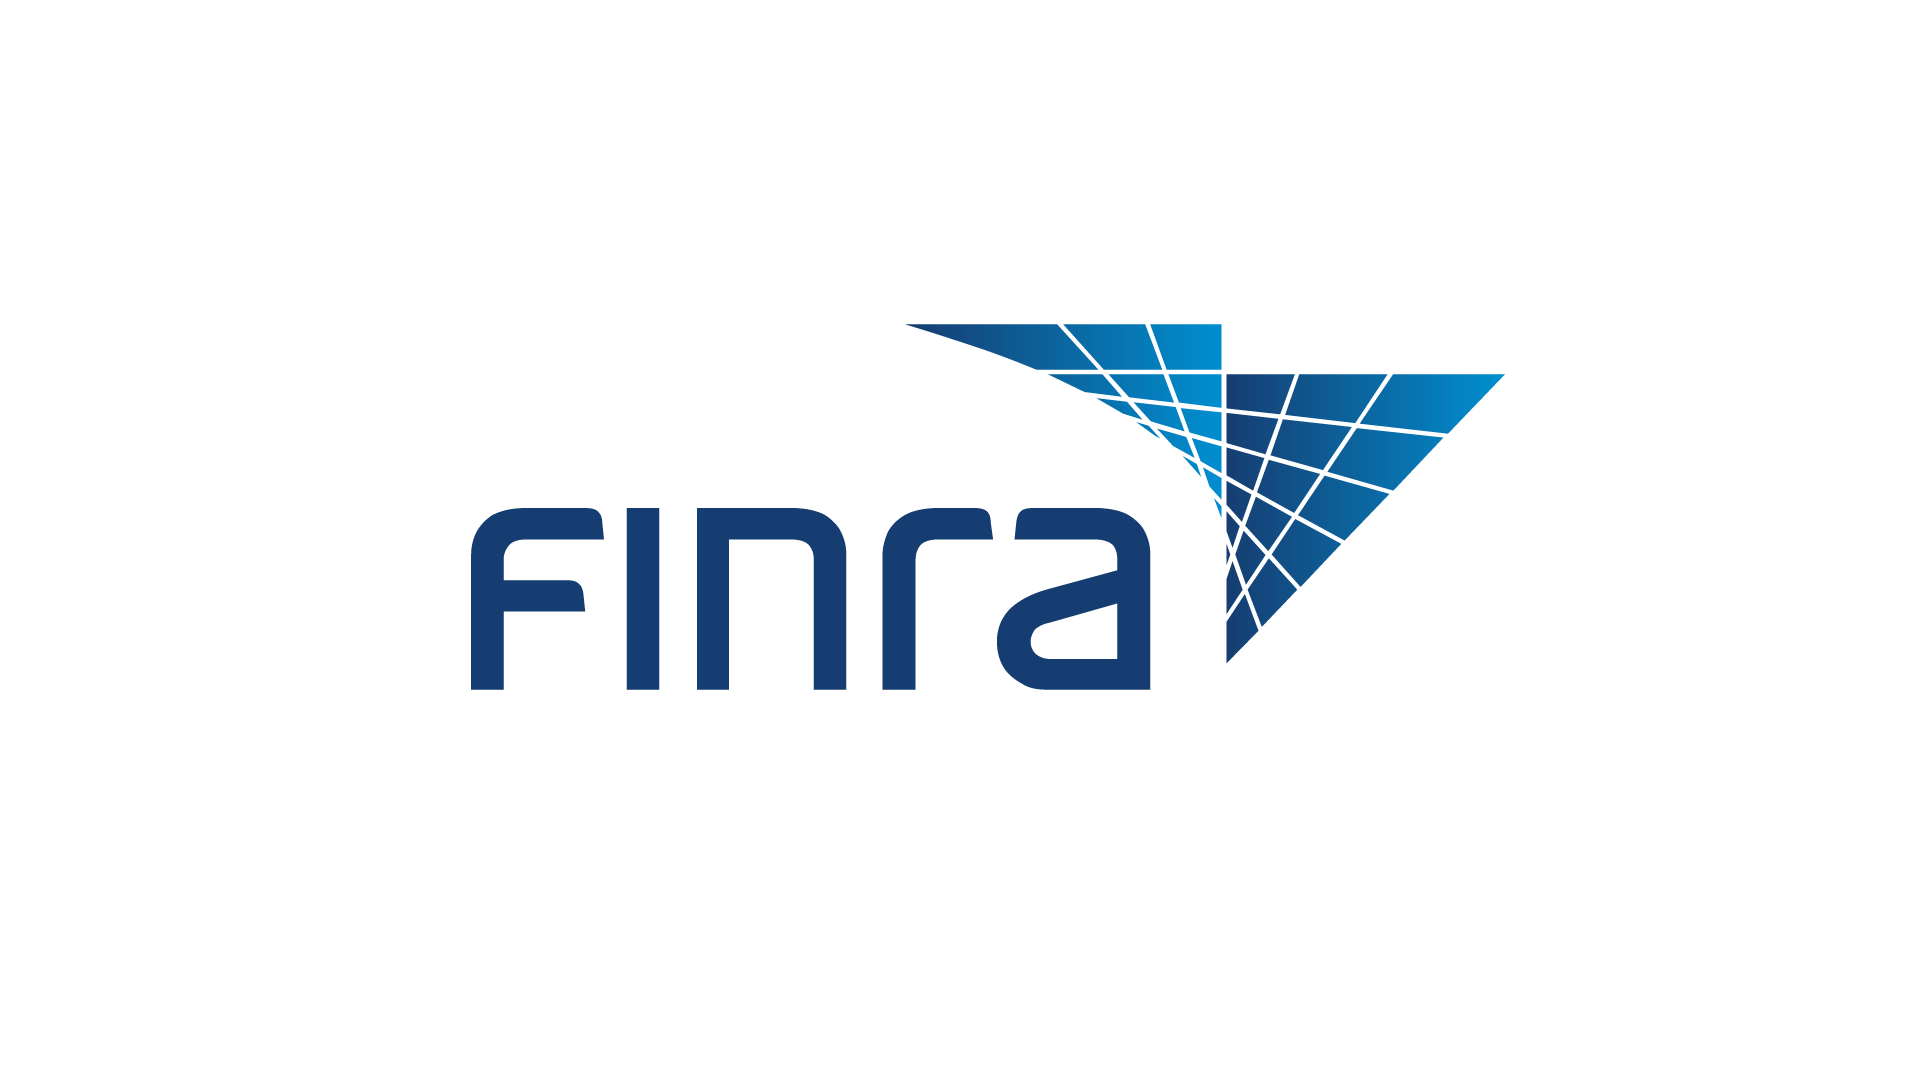 FINRA RN 19-26 Image